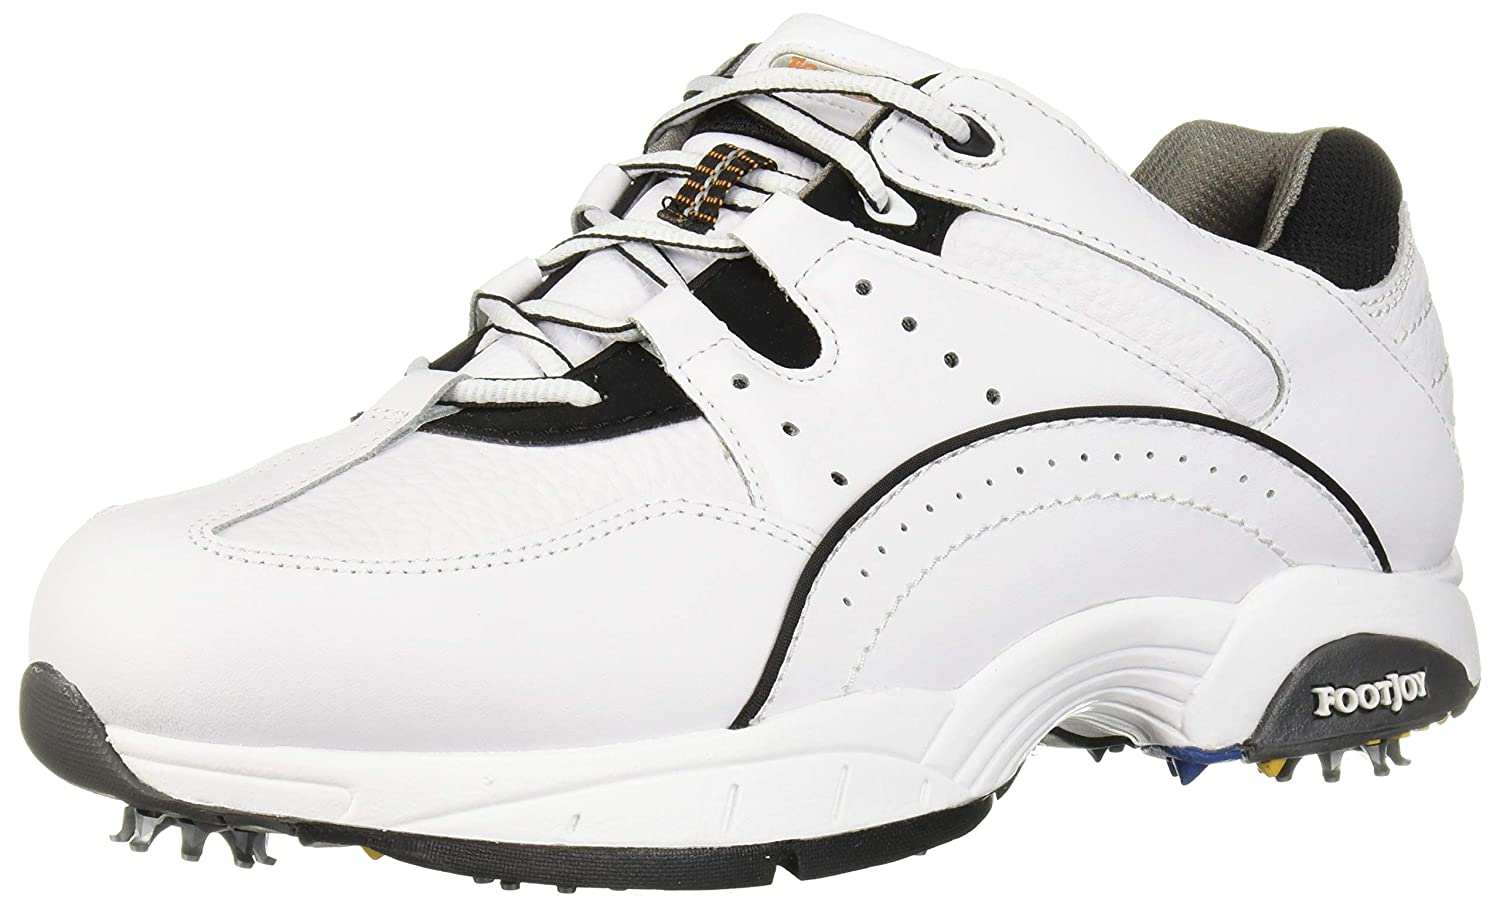 FootJoy Men s Sneaker Golf Shoes